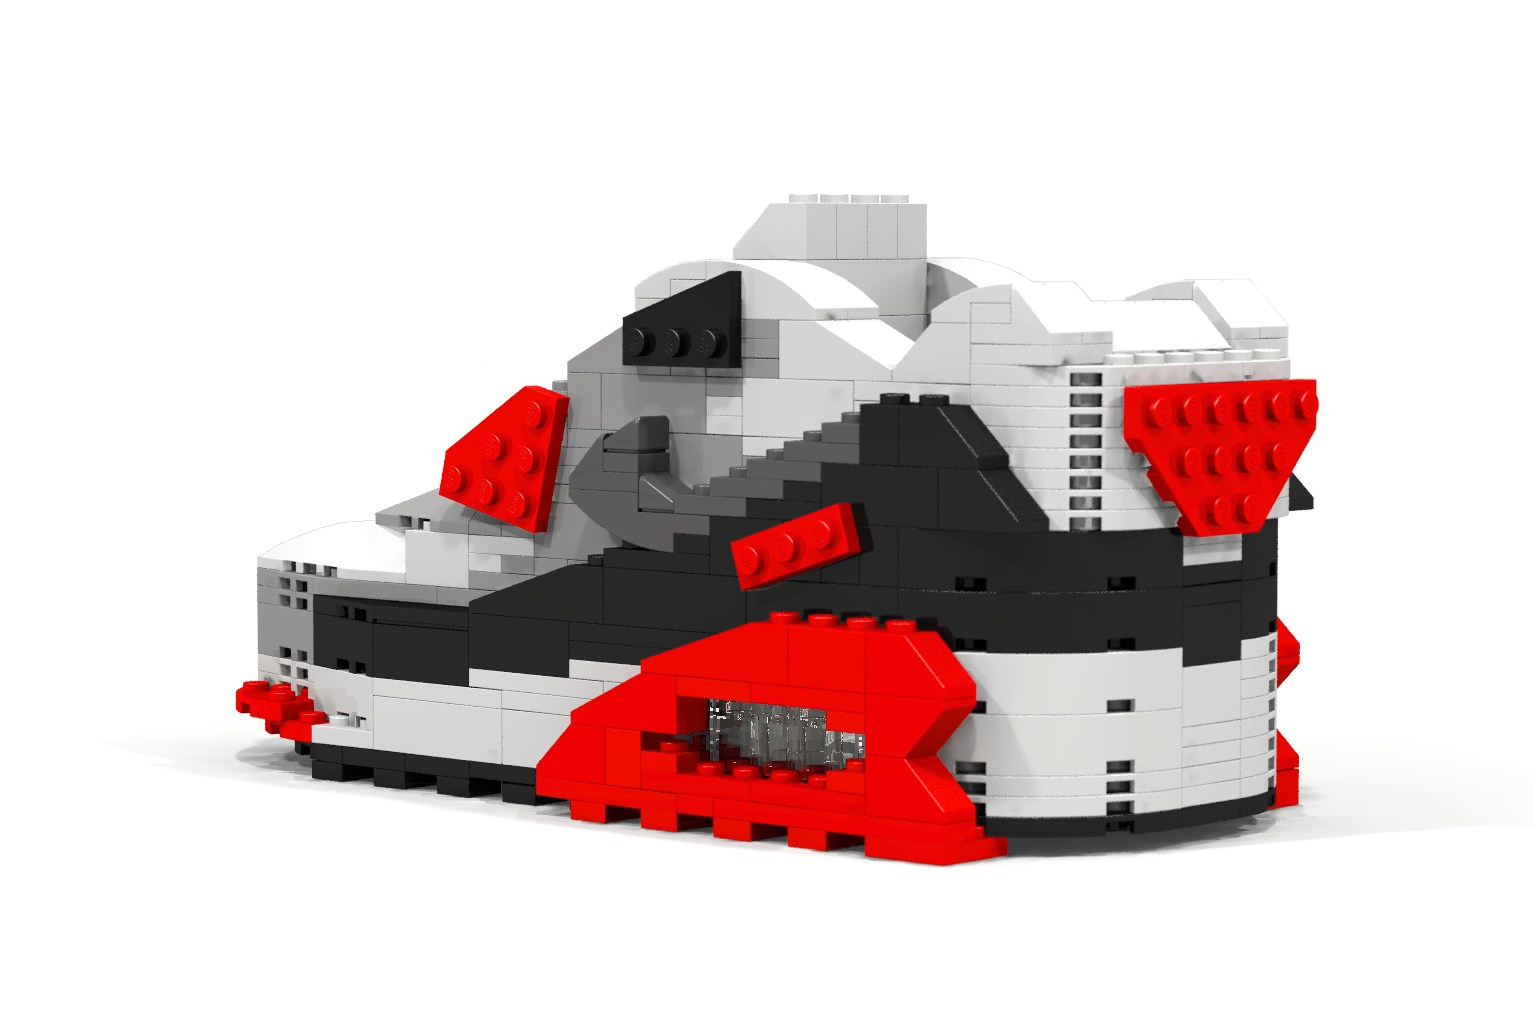 nikes-air-max-90-infrared-gets-remade-in-lego-4